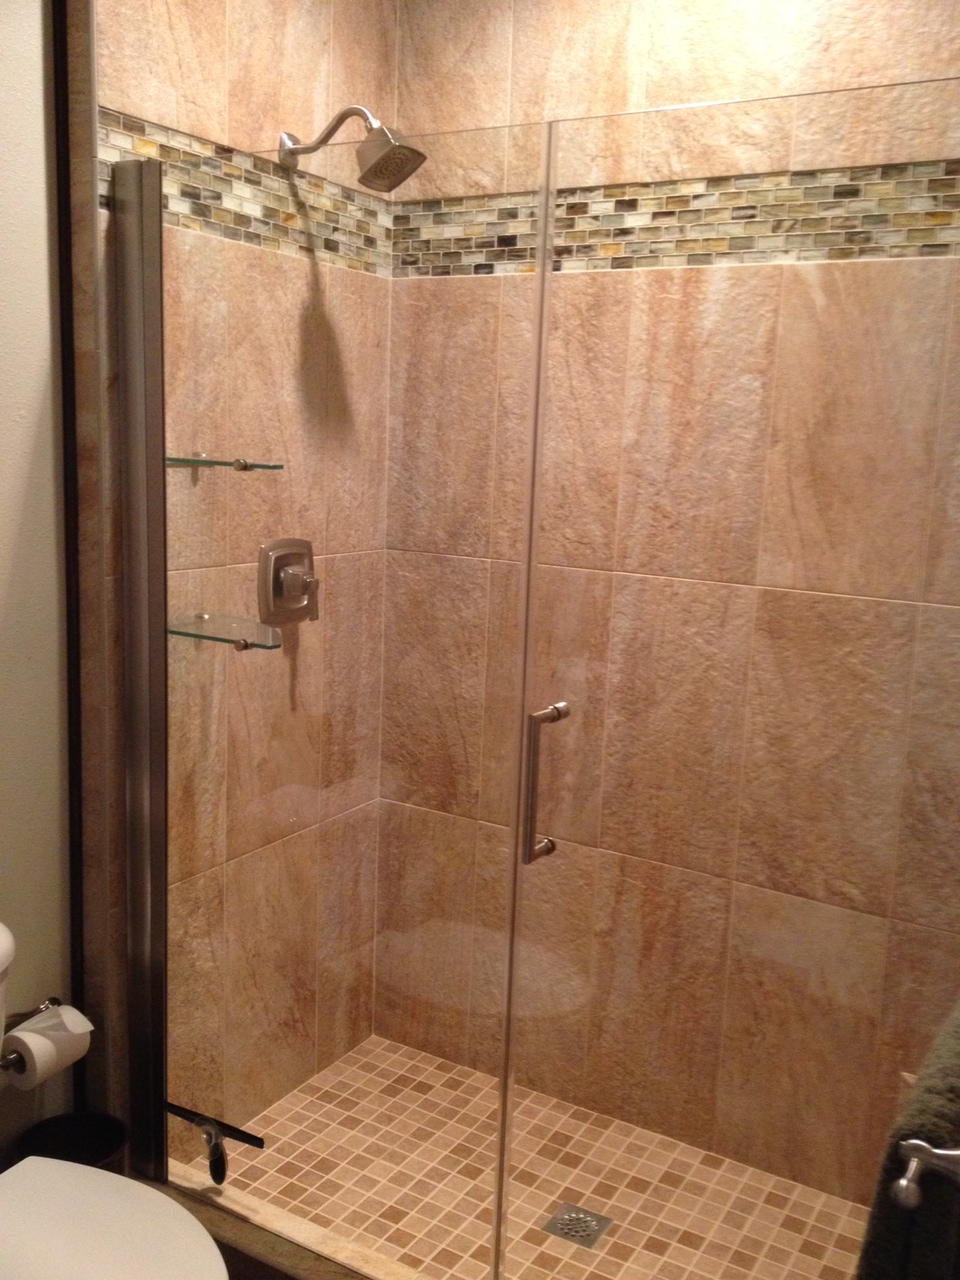 Shower Floor Tiles Which Why And How: Eco-friendly Cork Flooring In Bathroom